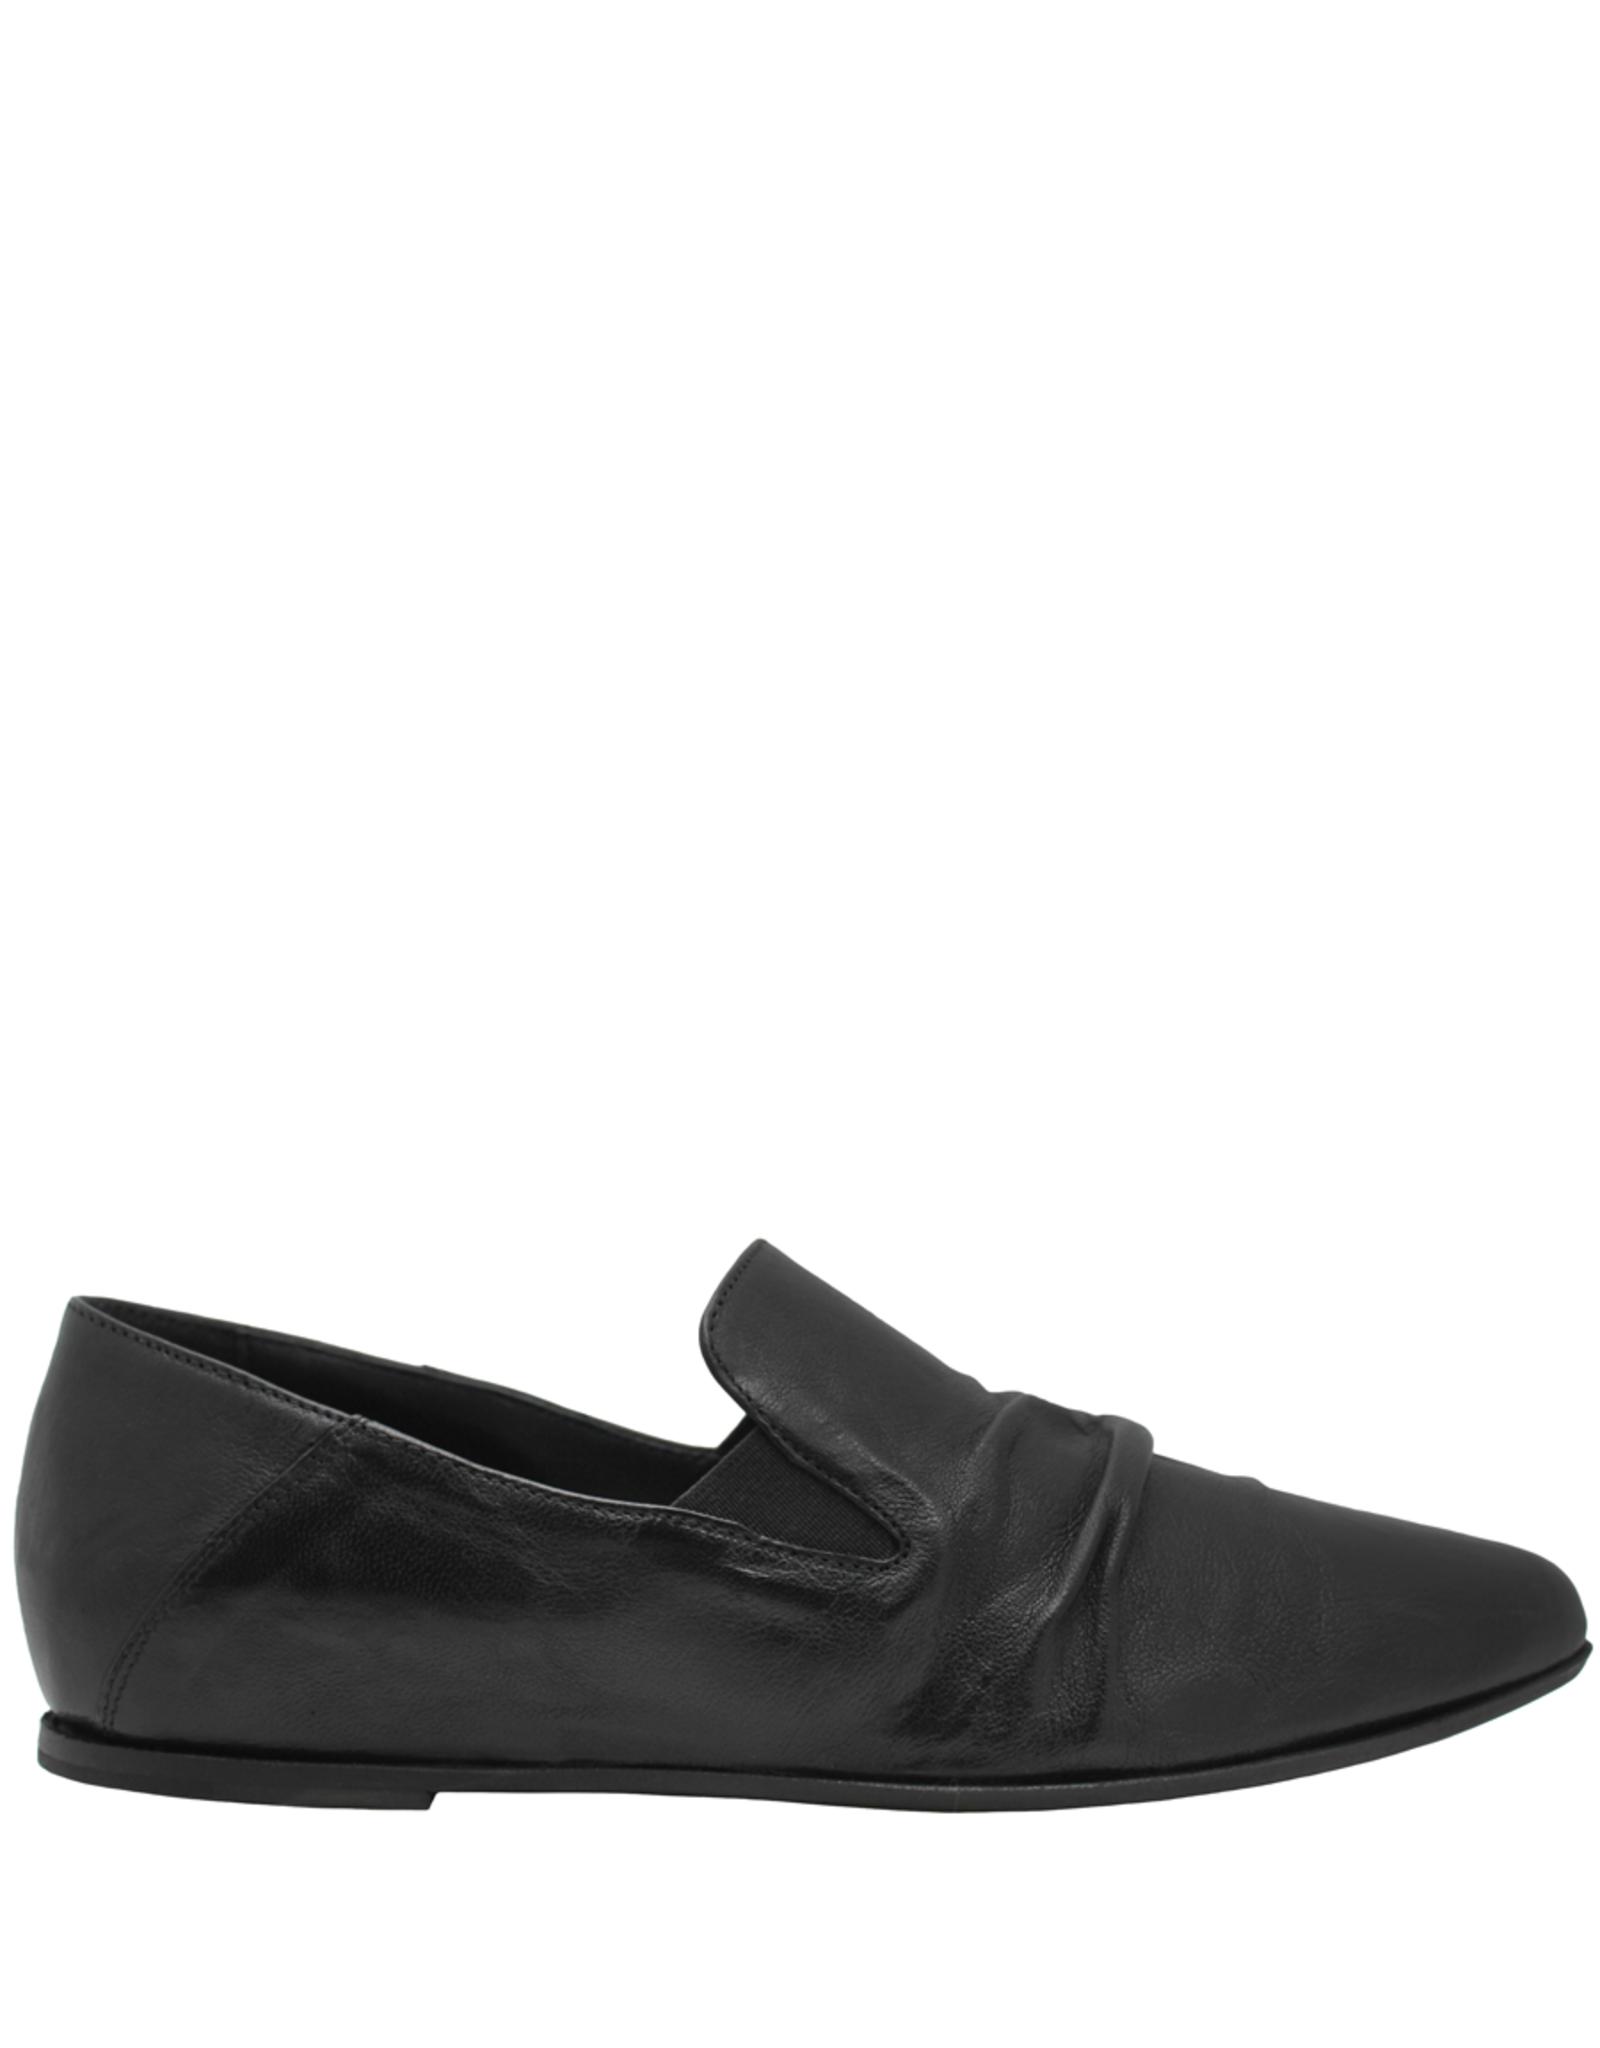 Ink Black Ruched Loafer 4736